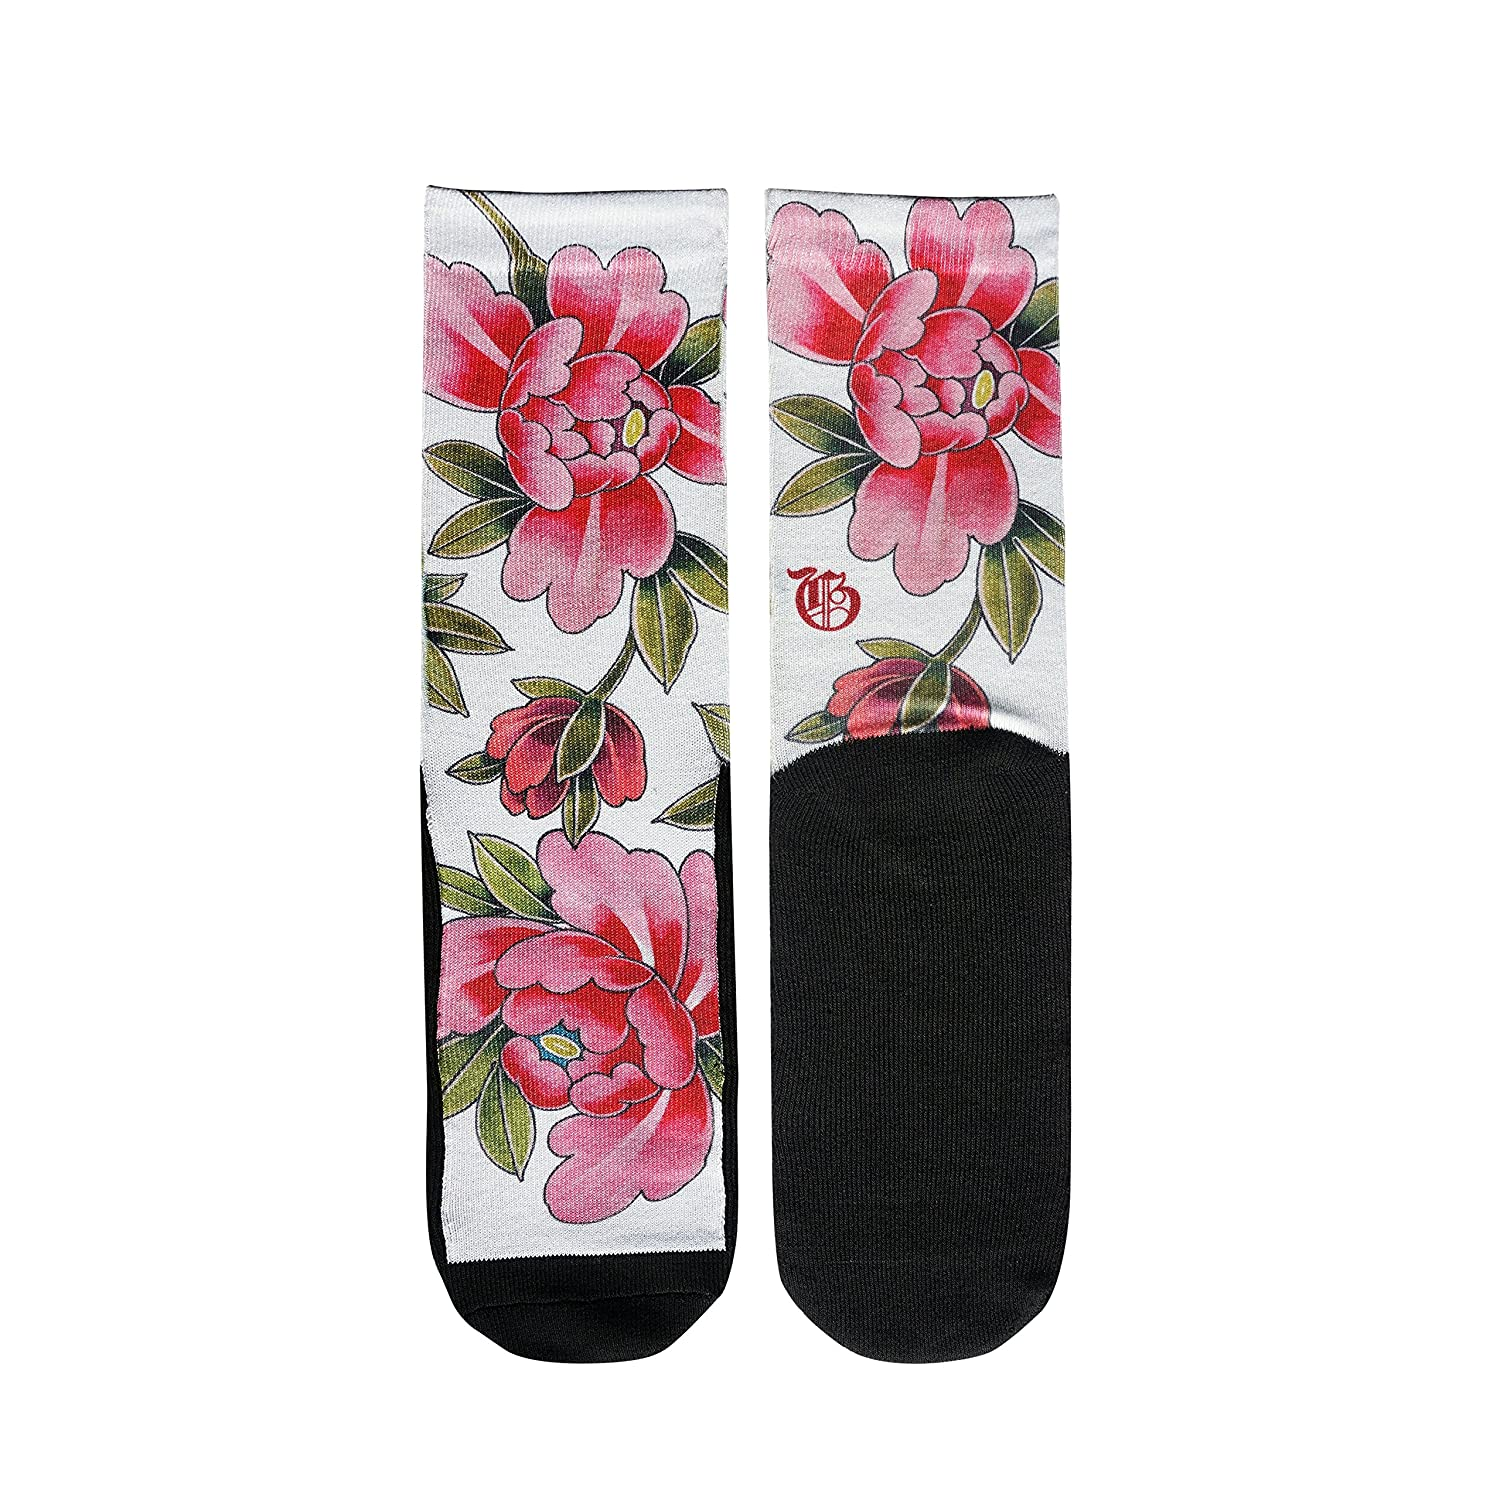 11c196bd6c0f3 Amazon.com: Gold Ink Novelty Elite Socks Gift With Floral Tattoo Art Print  Size 6-12: Home & Kitchen